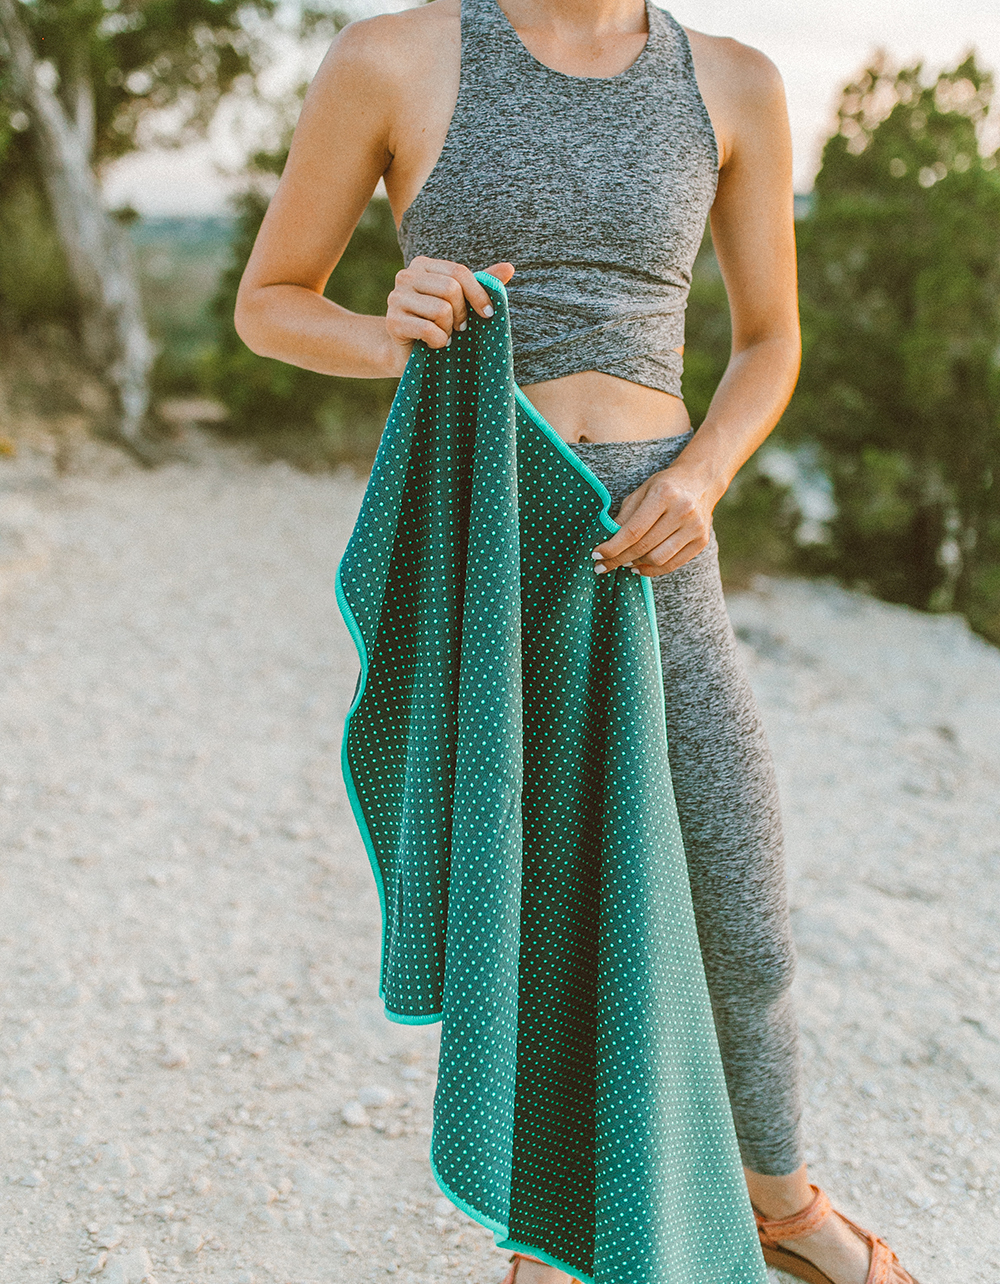 livvyland-blog-olivia-watson-austin-texas-mount-bonnell-yoga-backcountry-maduka-yogitoes-mat-towel